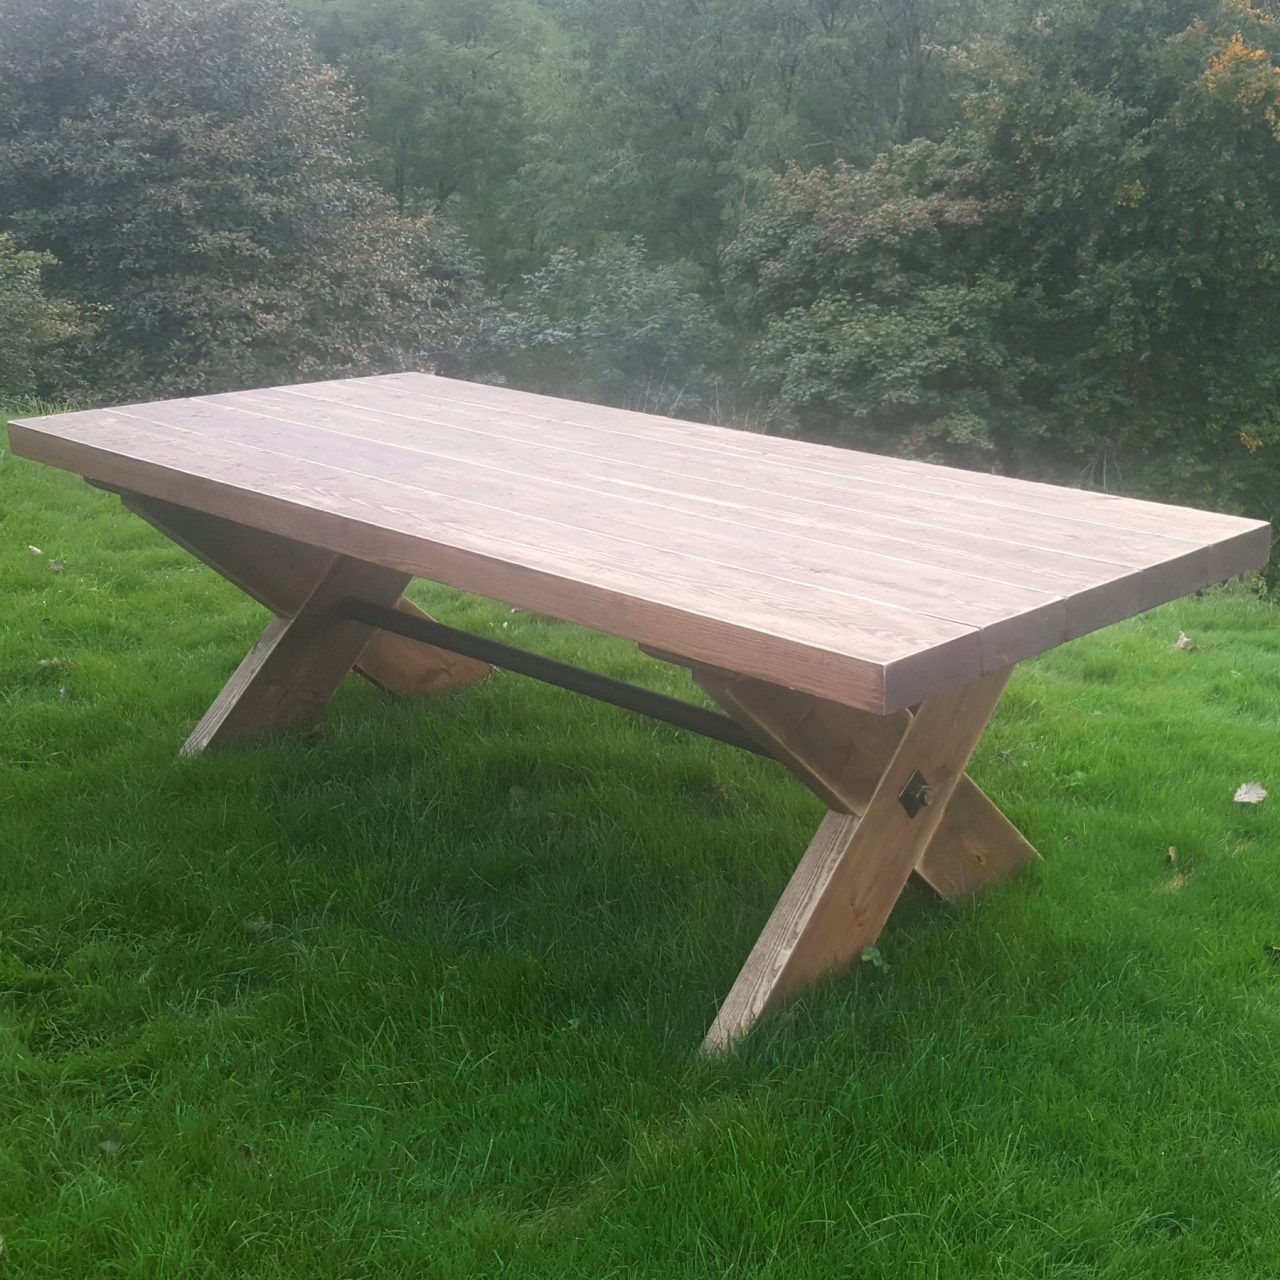 8ft Rustic Garden Table Add A Touch Of Class To Your Garden Ligneus Designs